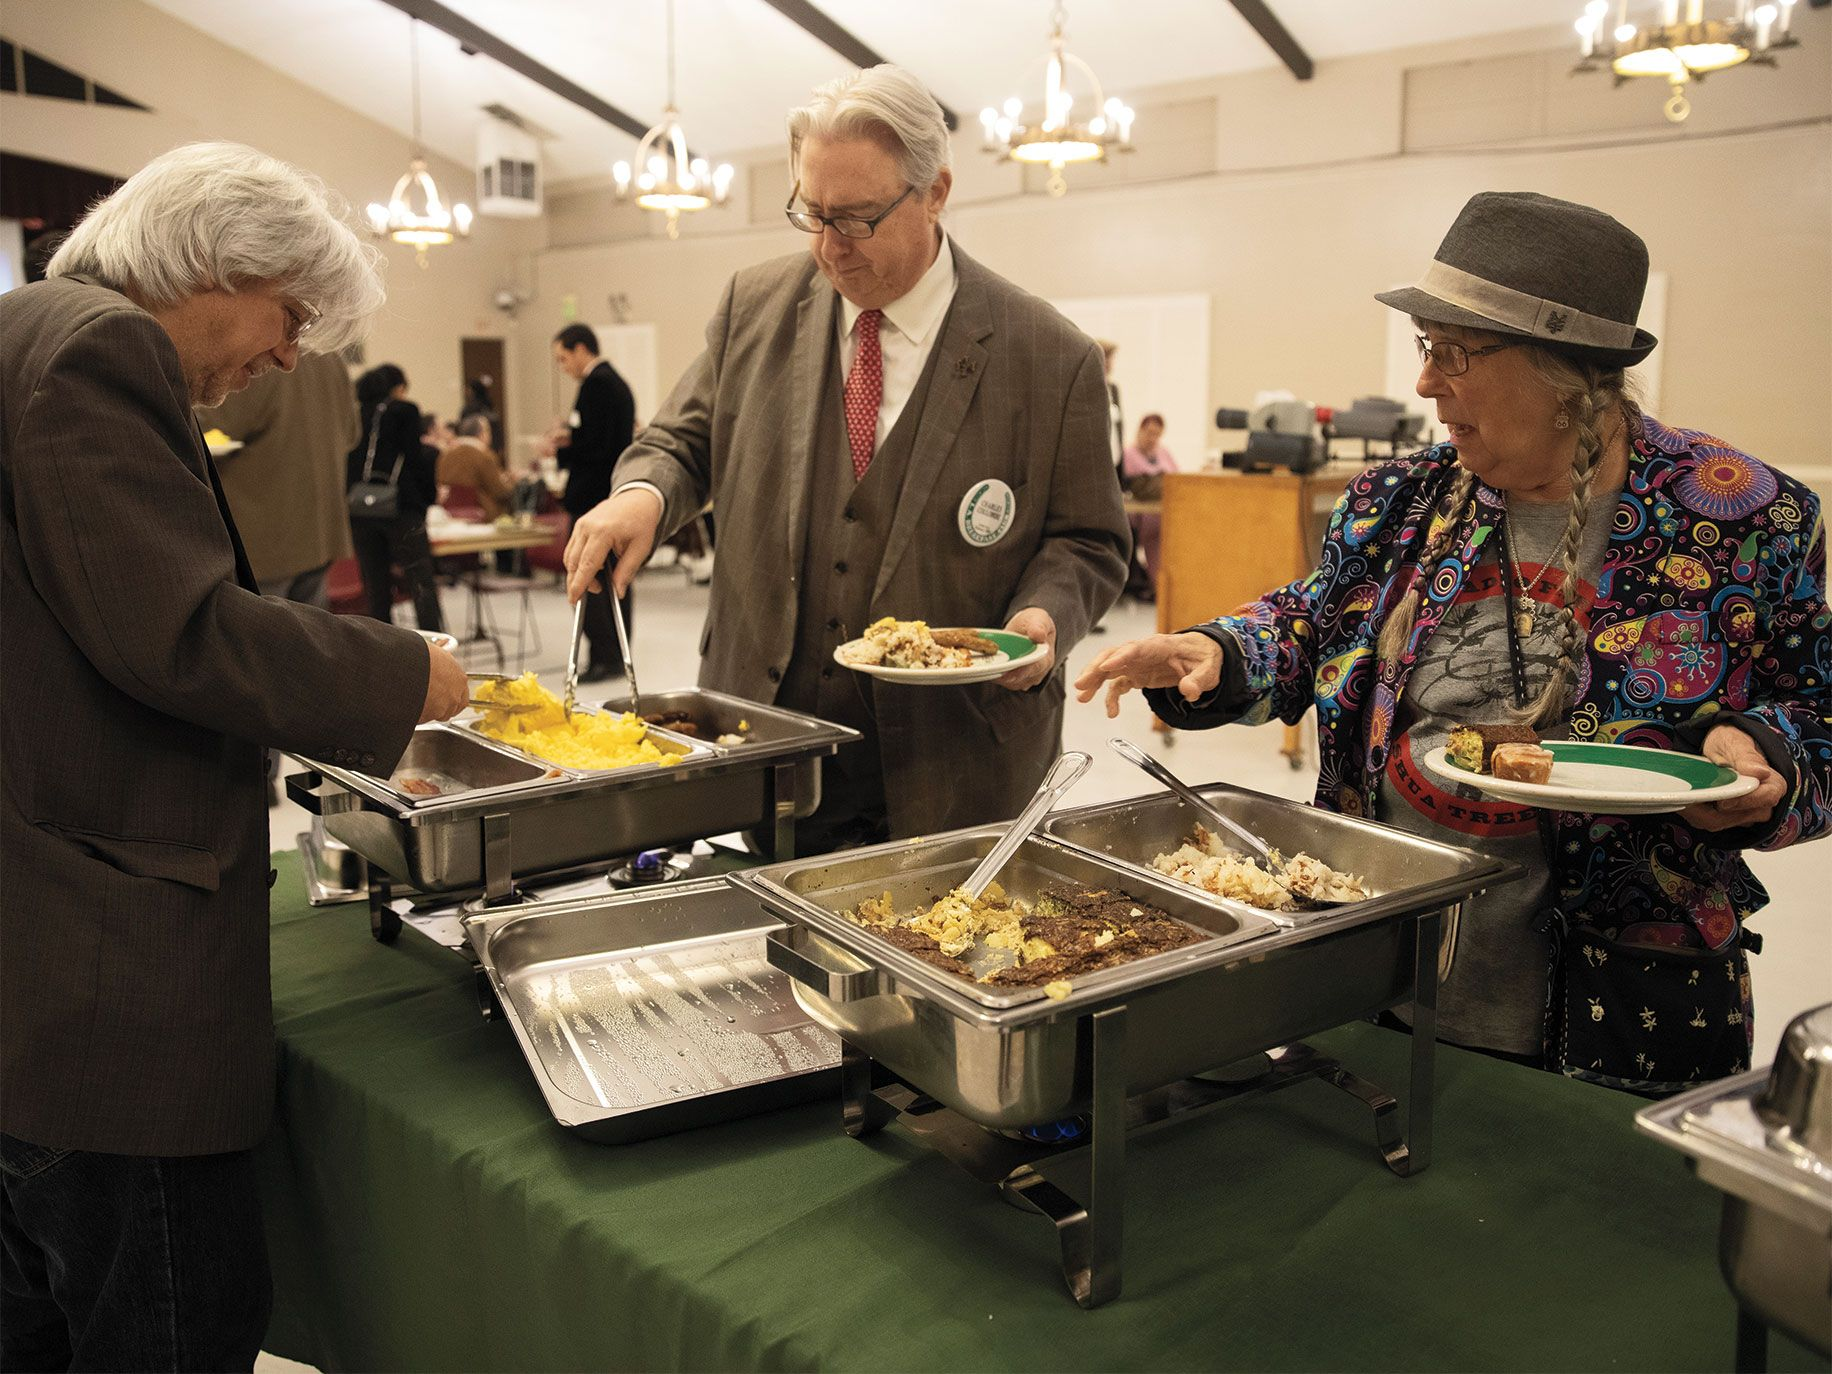 Members Charles Coulombe (center) and Jenifer Palmer Lacy (right) dig into a catered hot breakfast.